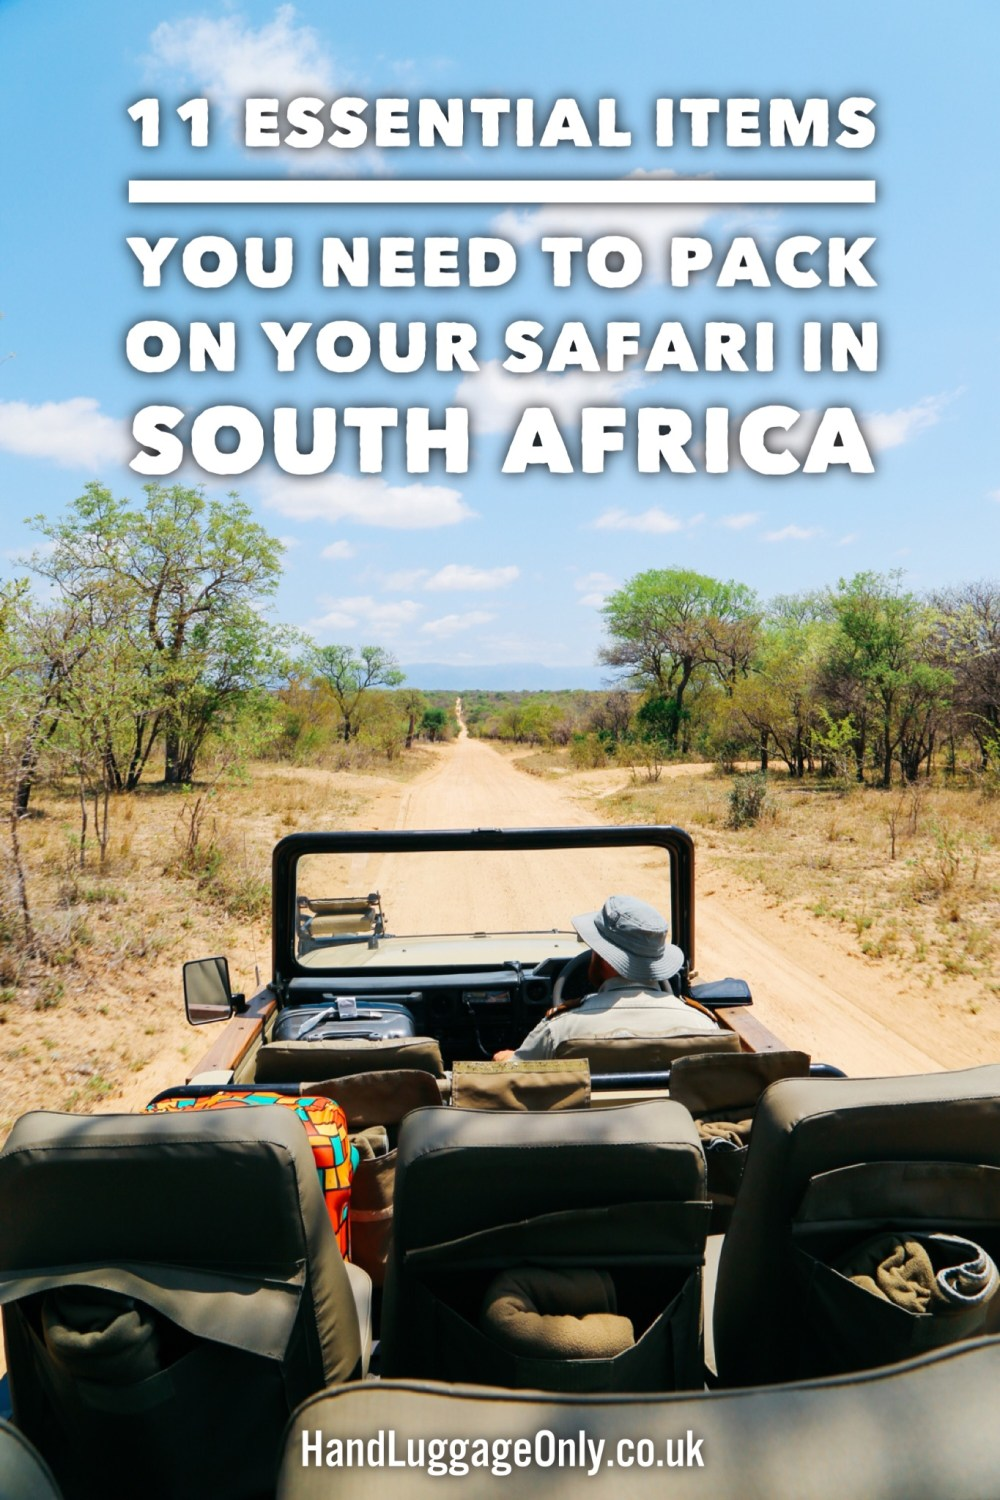 11 ESSENTIAL ITEMS YOU NEED TO PACK ON YOUR SAFARI IN SOUTH AFRICA (1)